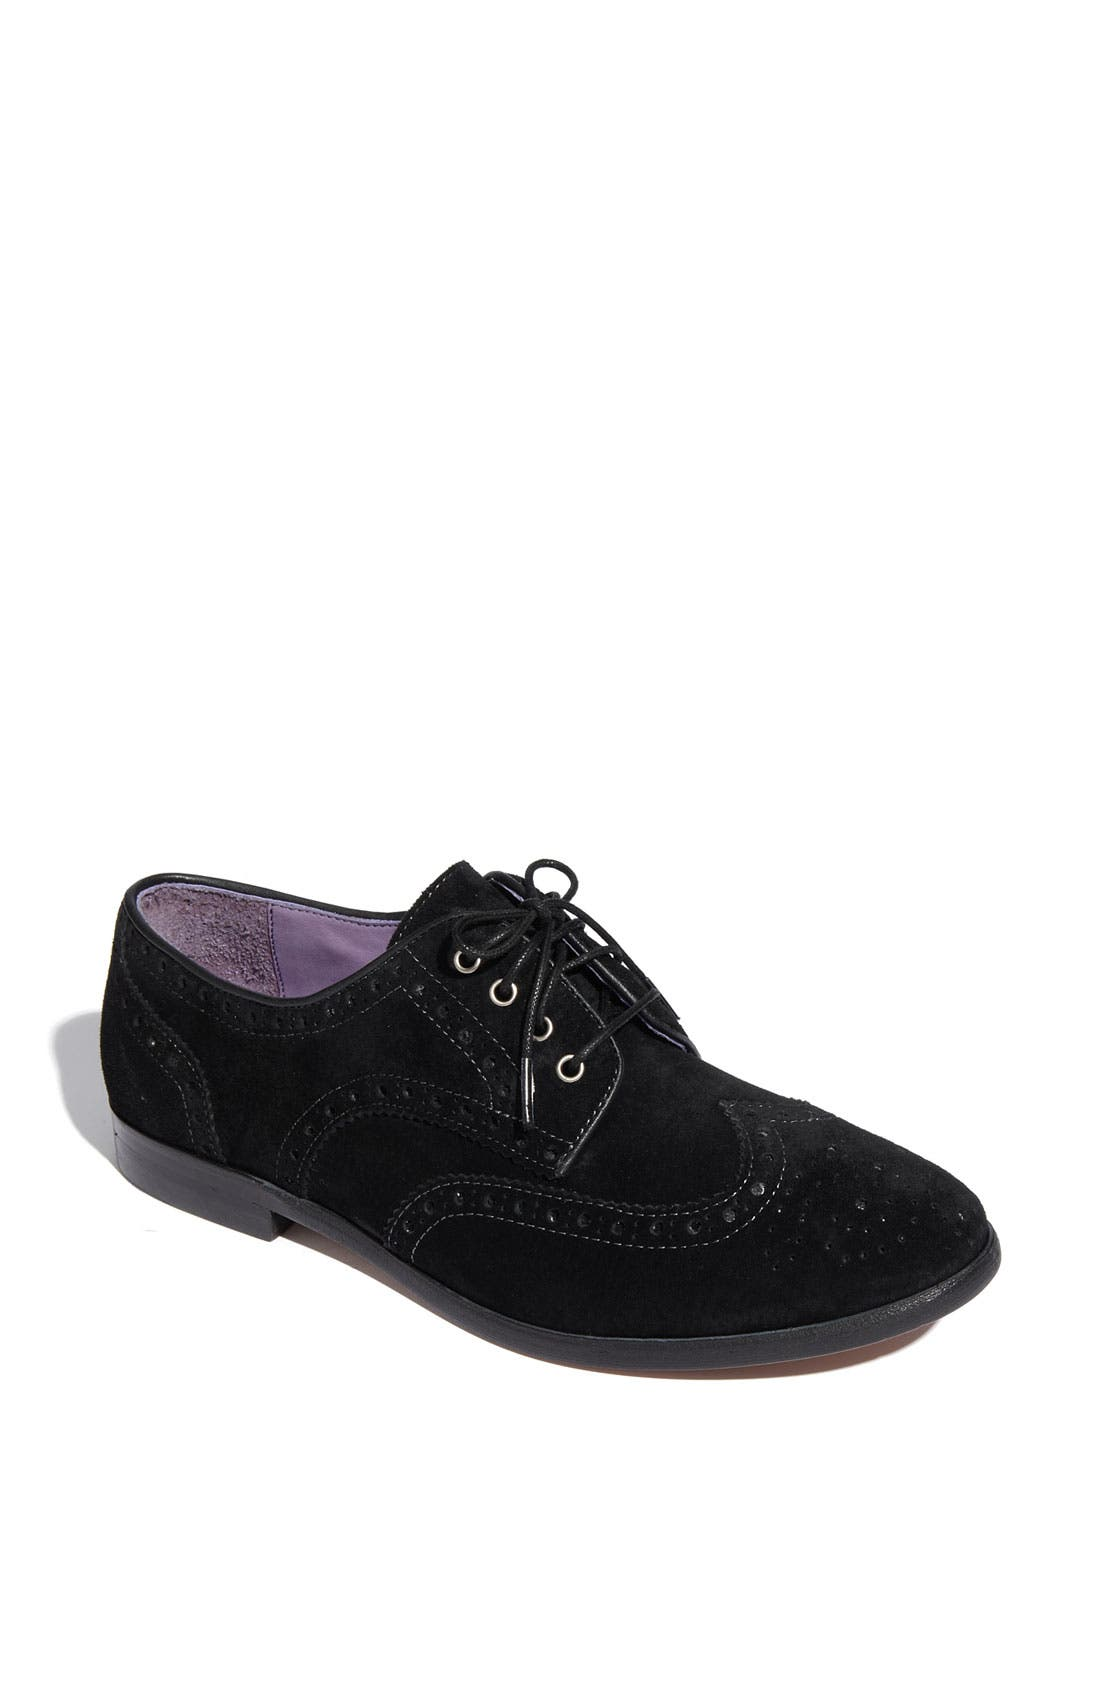 Anna Sui for Hush Puppies<sup>®</sup> 'Lindley' Oxford, Main, color, 001